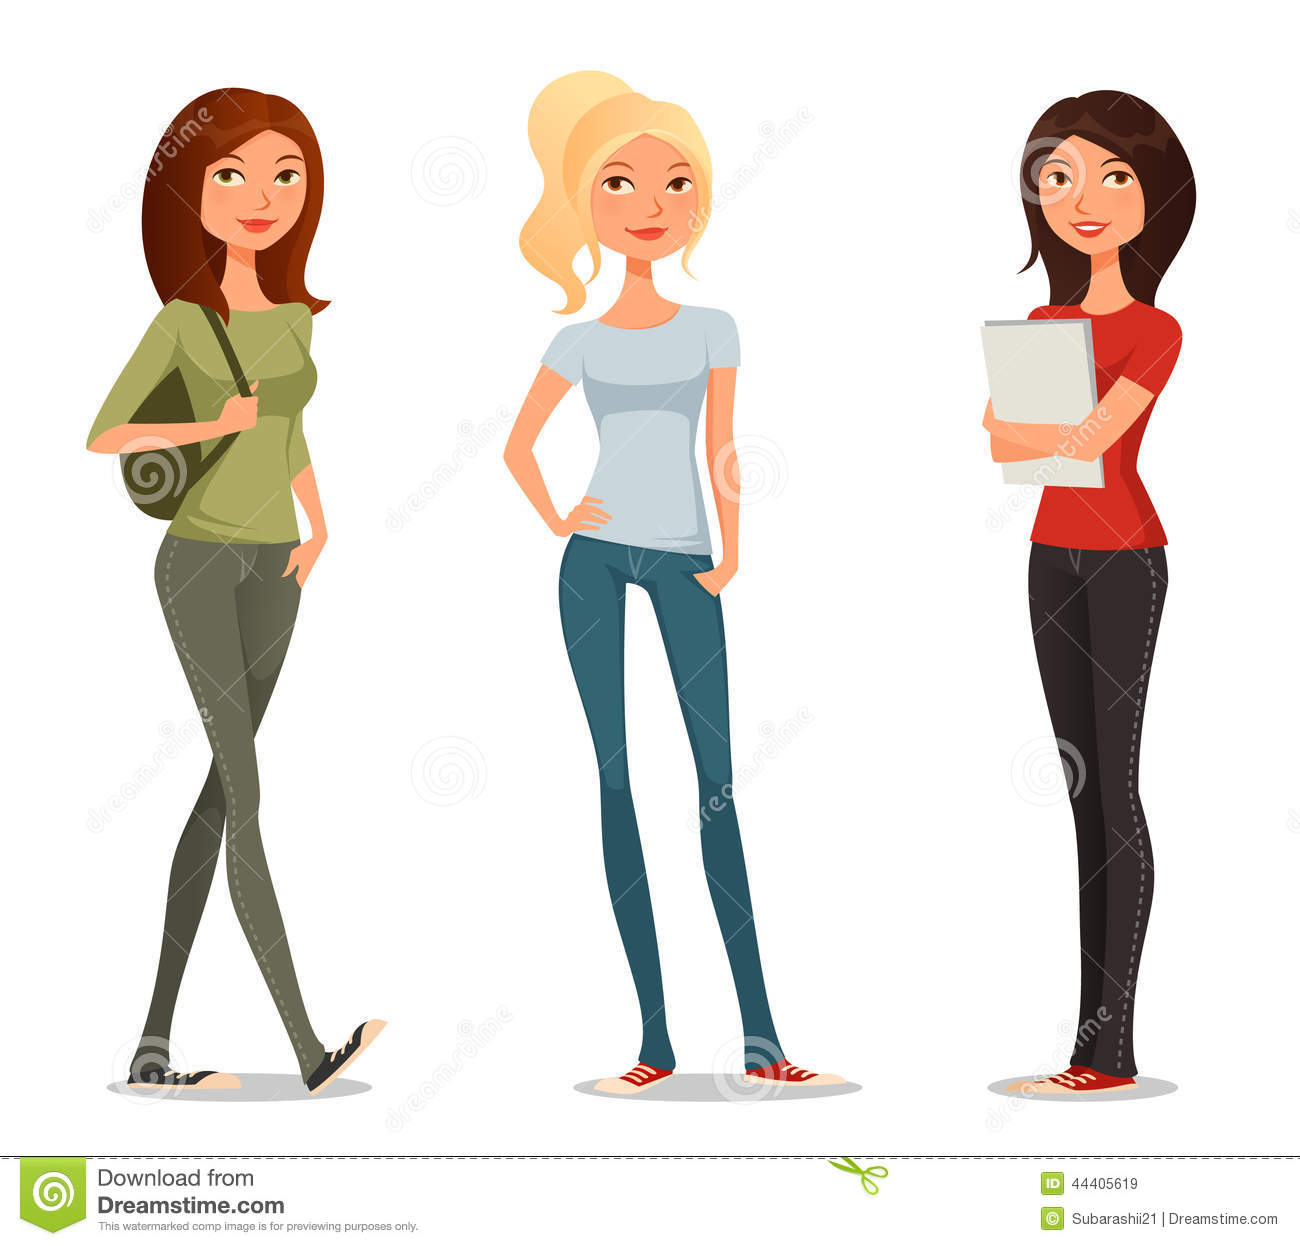 Teenage girls clipart 6 » Clipart Station.